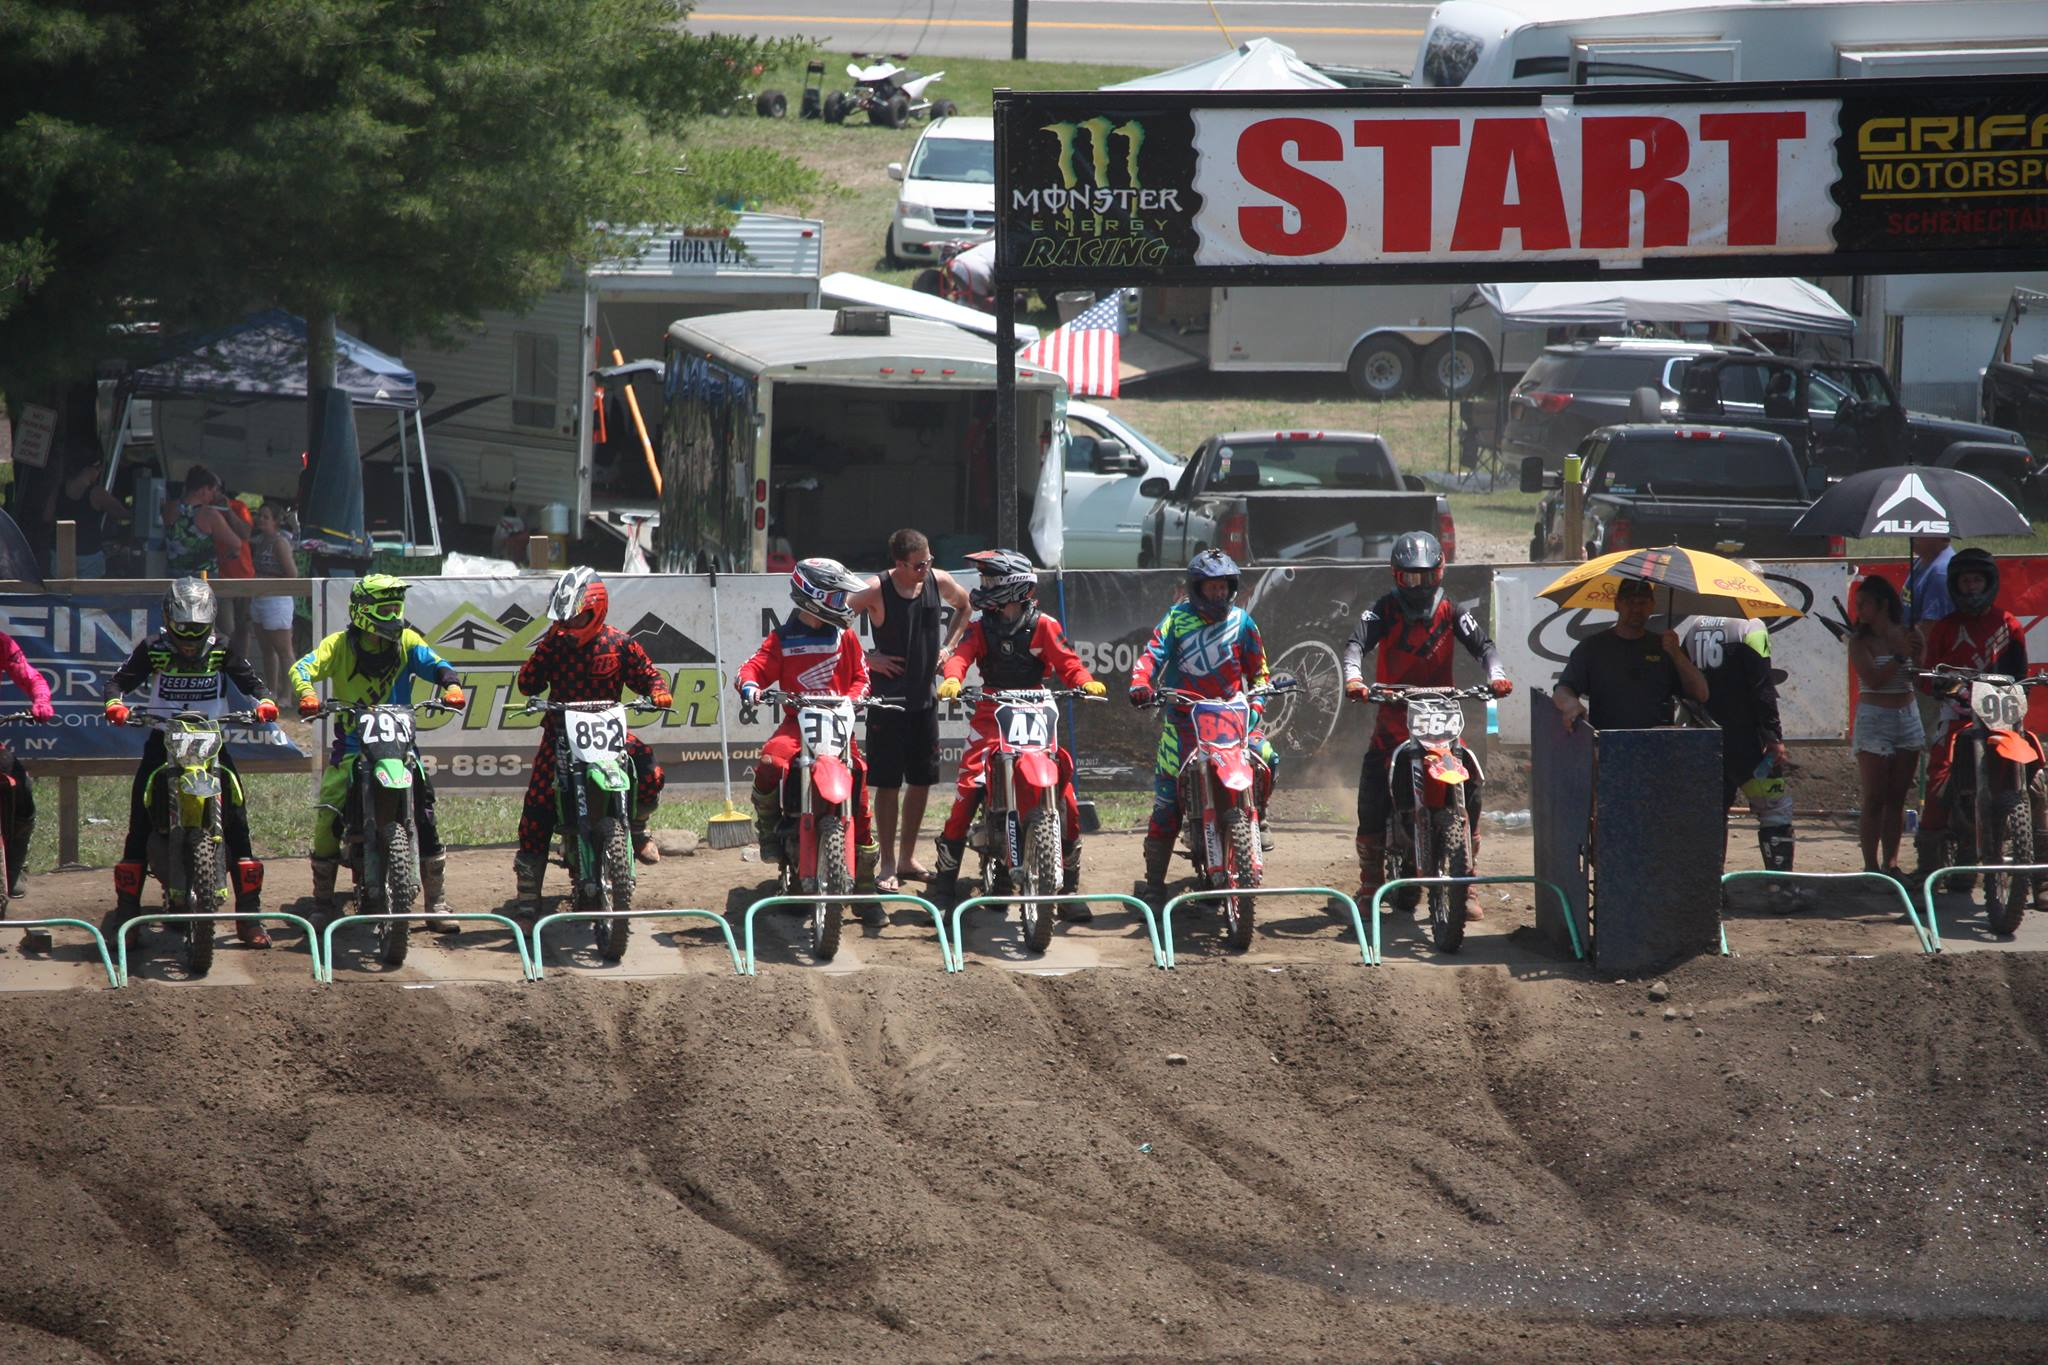 Riders deal with heat - Riders prep for the heat and humidity during 4th of July weekend race. Photo credit to Ashley R. Walseman